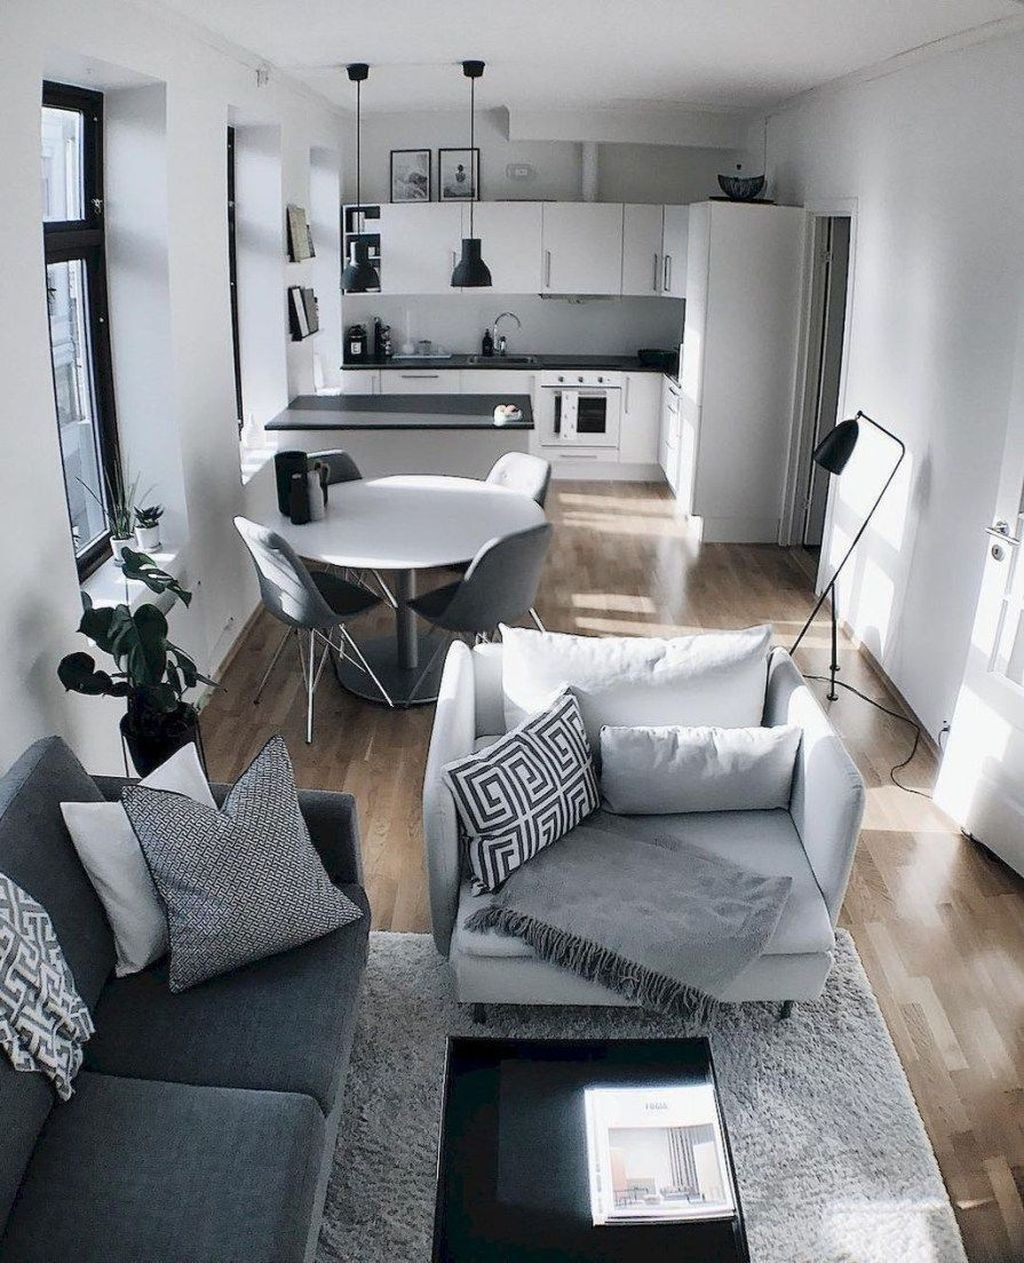 Cool 30 Interior Design Ideas You Probably Haven T Seen Before More At Https Www Apartment Decor Inspiration Small Apartment Living Room Fresh Living Room